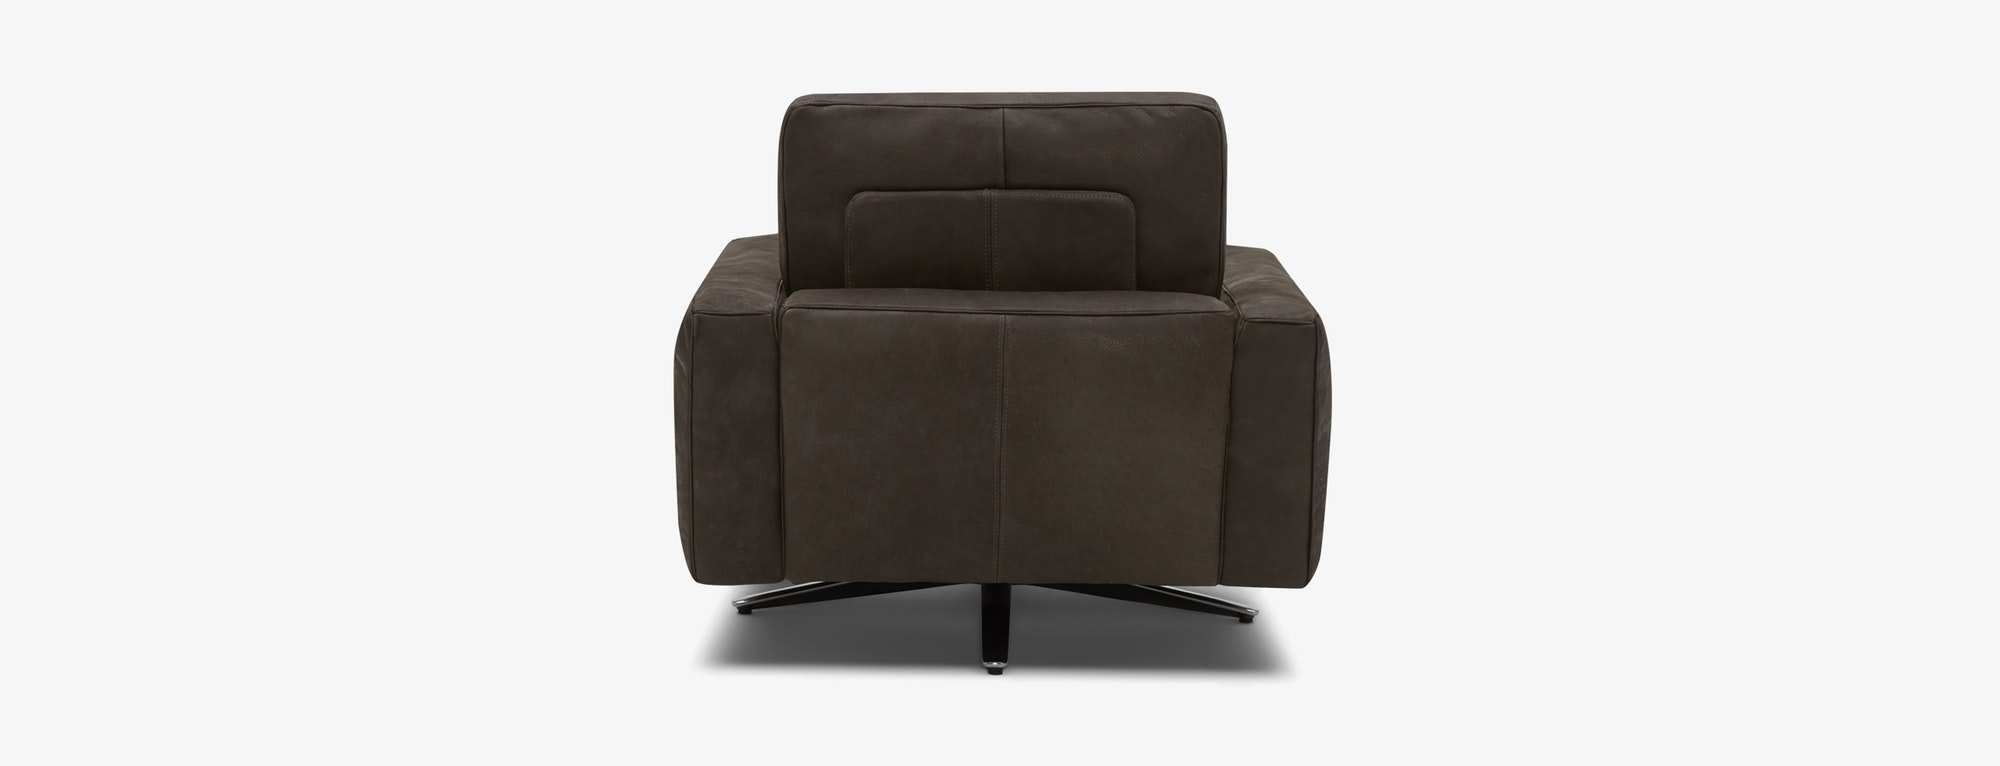 Nova-Leather-Swivel-Chair-Toledo-Graphite-T1-469